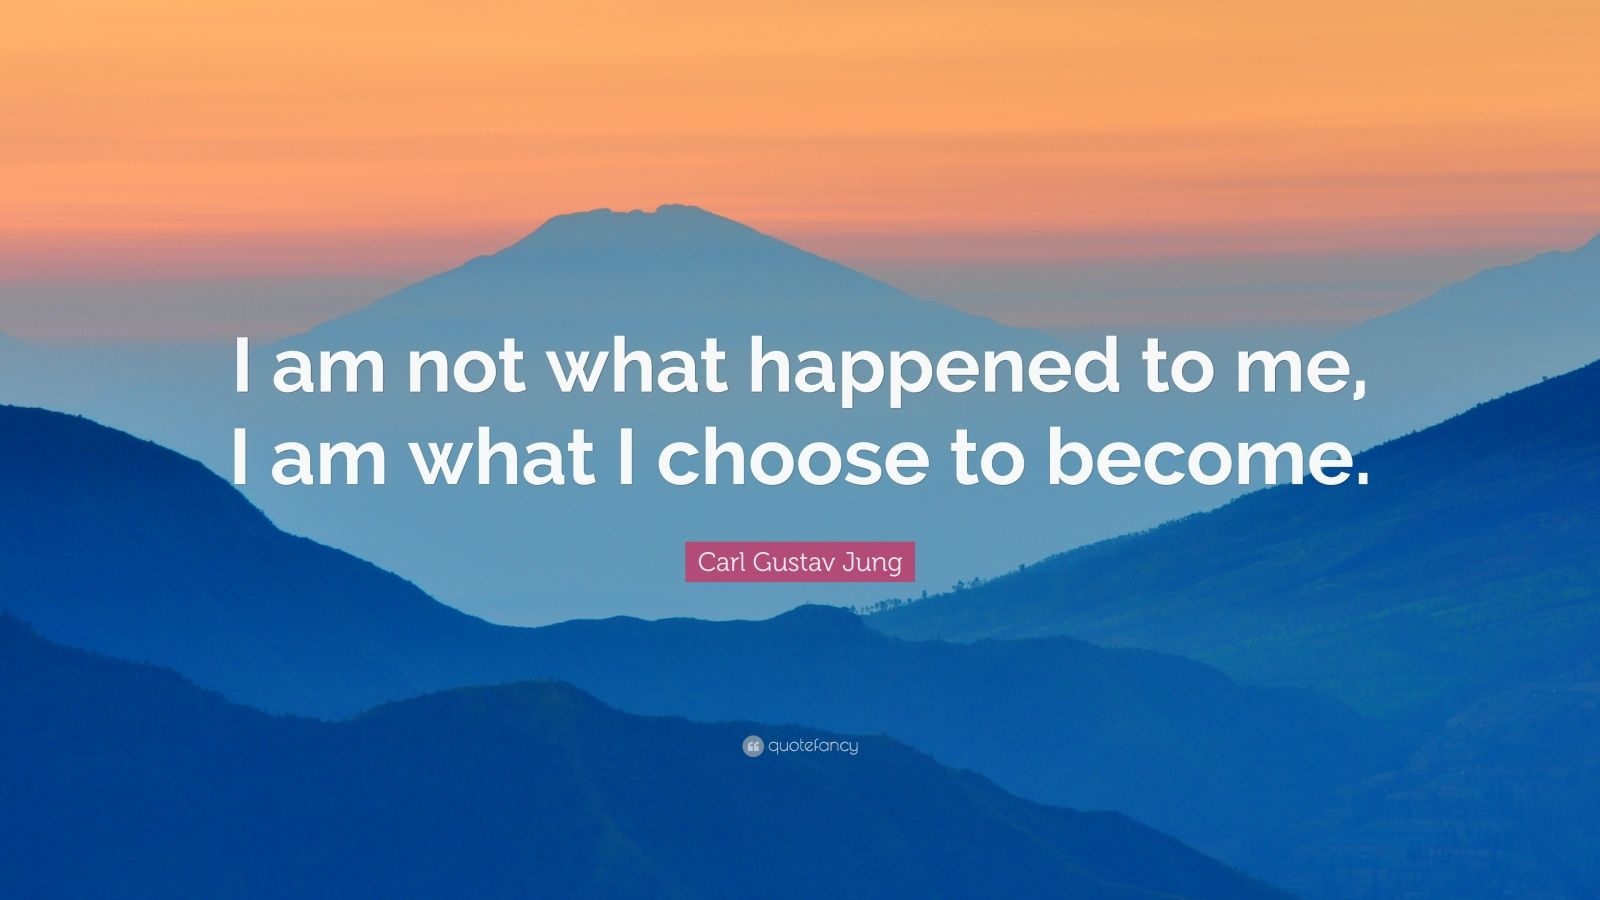 Motivational Life Quotes Wallpapers Carl Gustav Jung Quote I Am Not What Happened To Me I